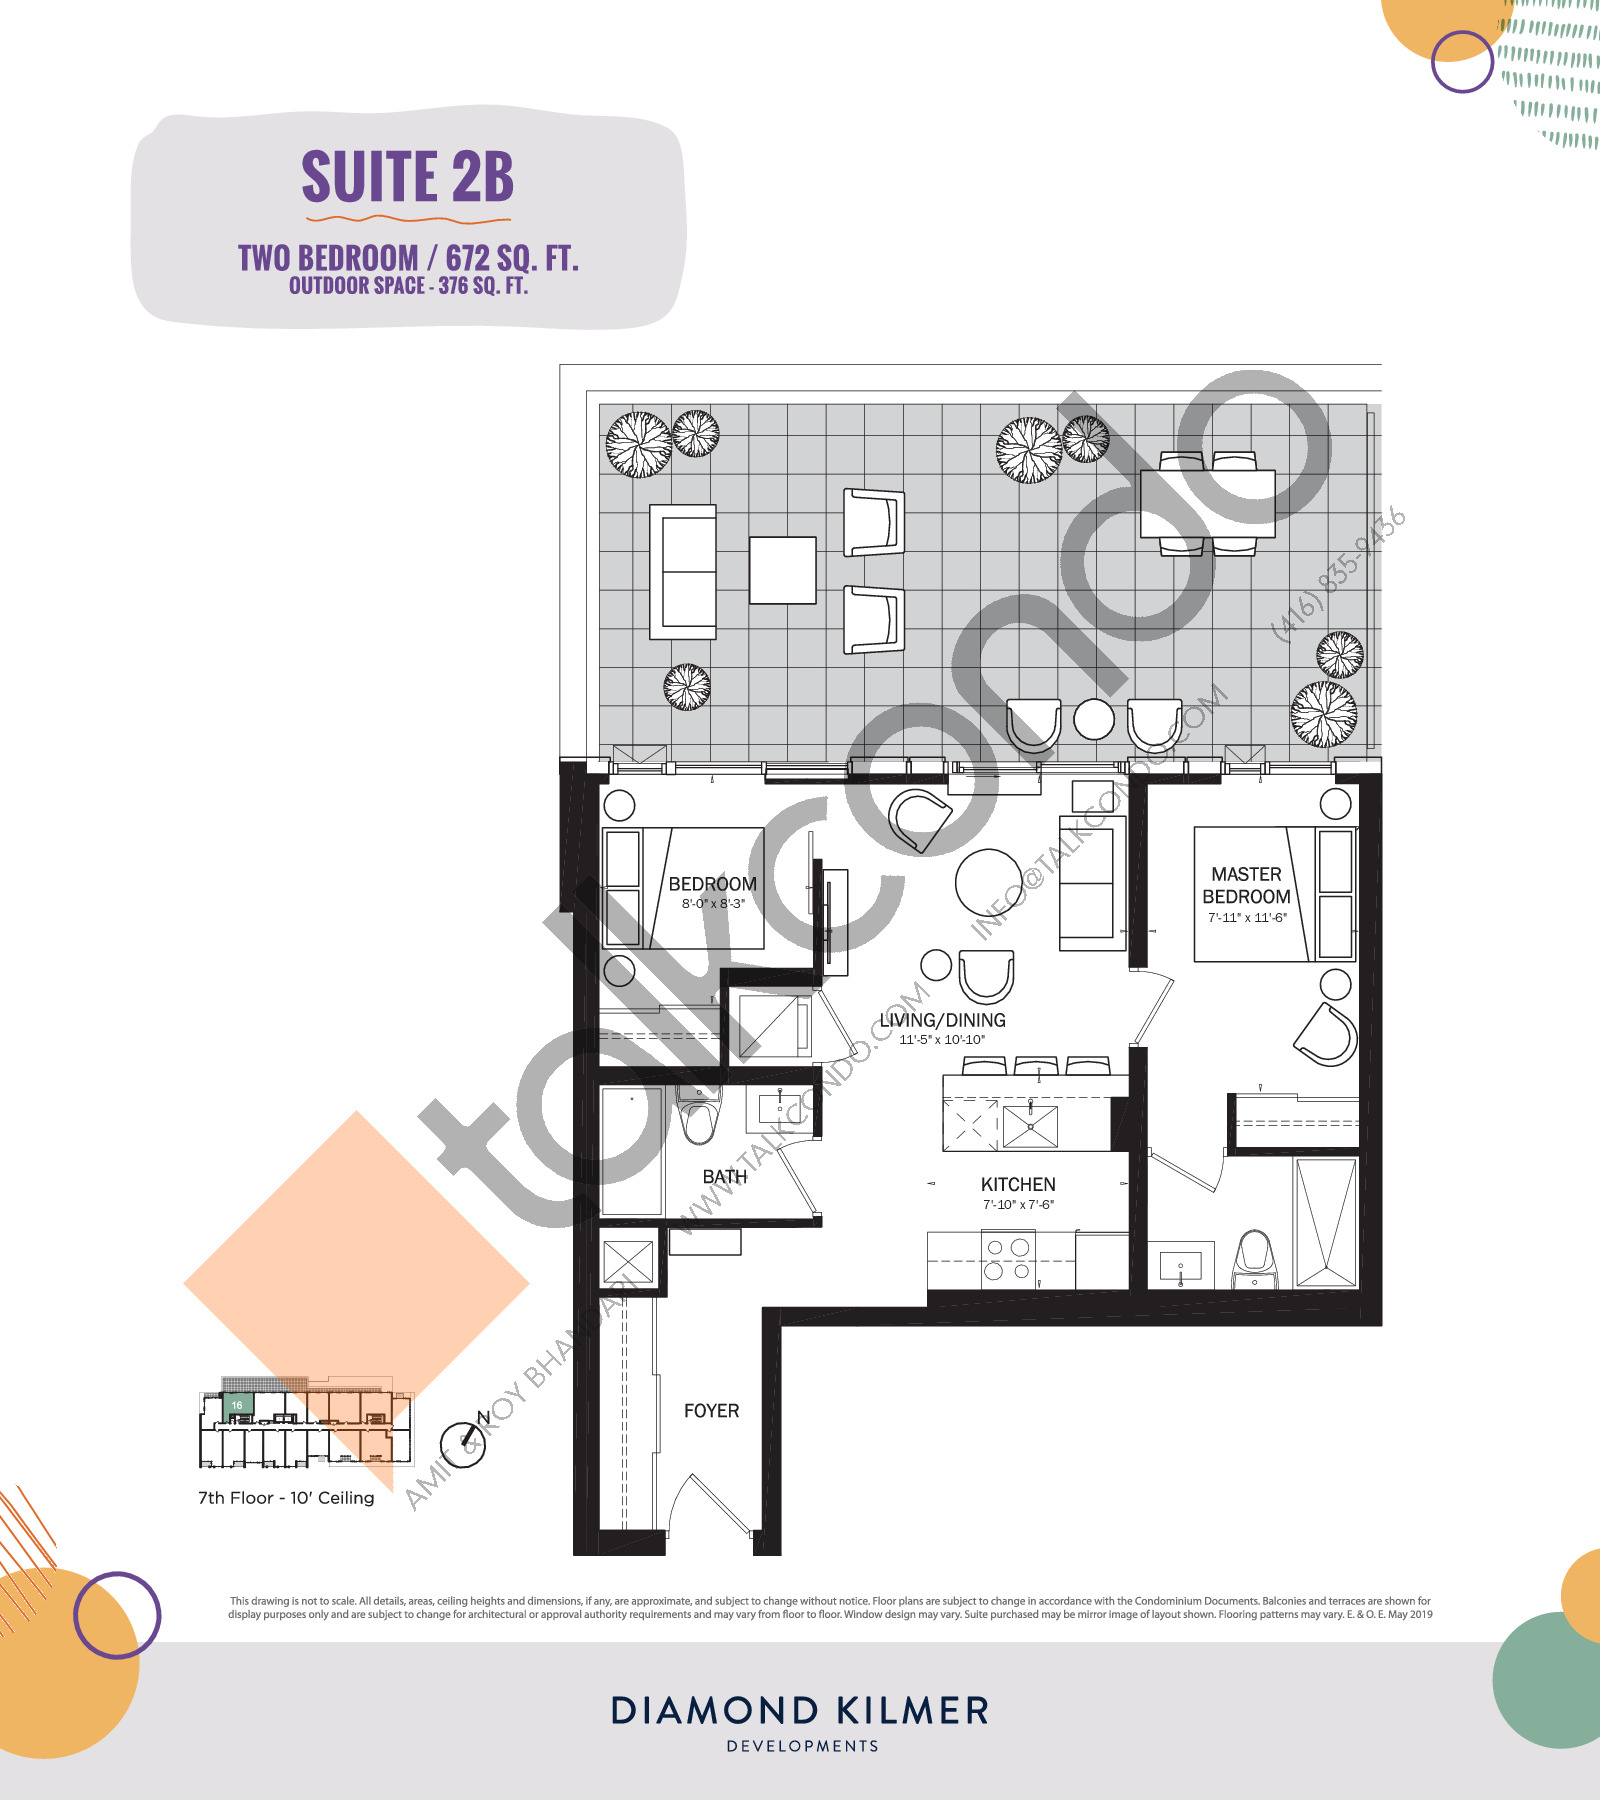 2B Floor Plan at Reunion Crossing Condos & Urban Towns - 672 sq.ft